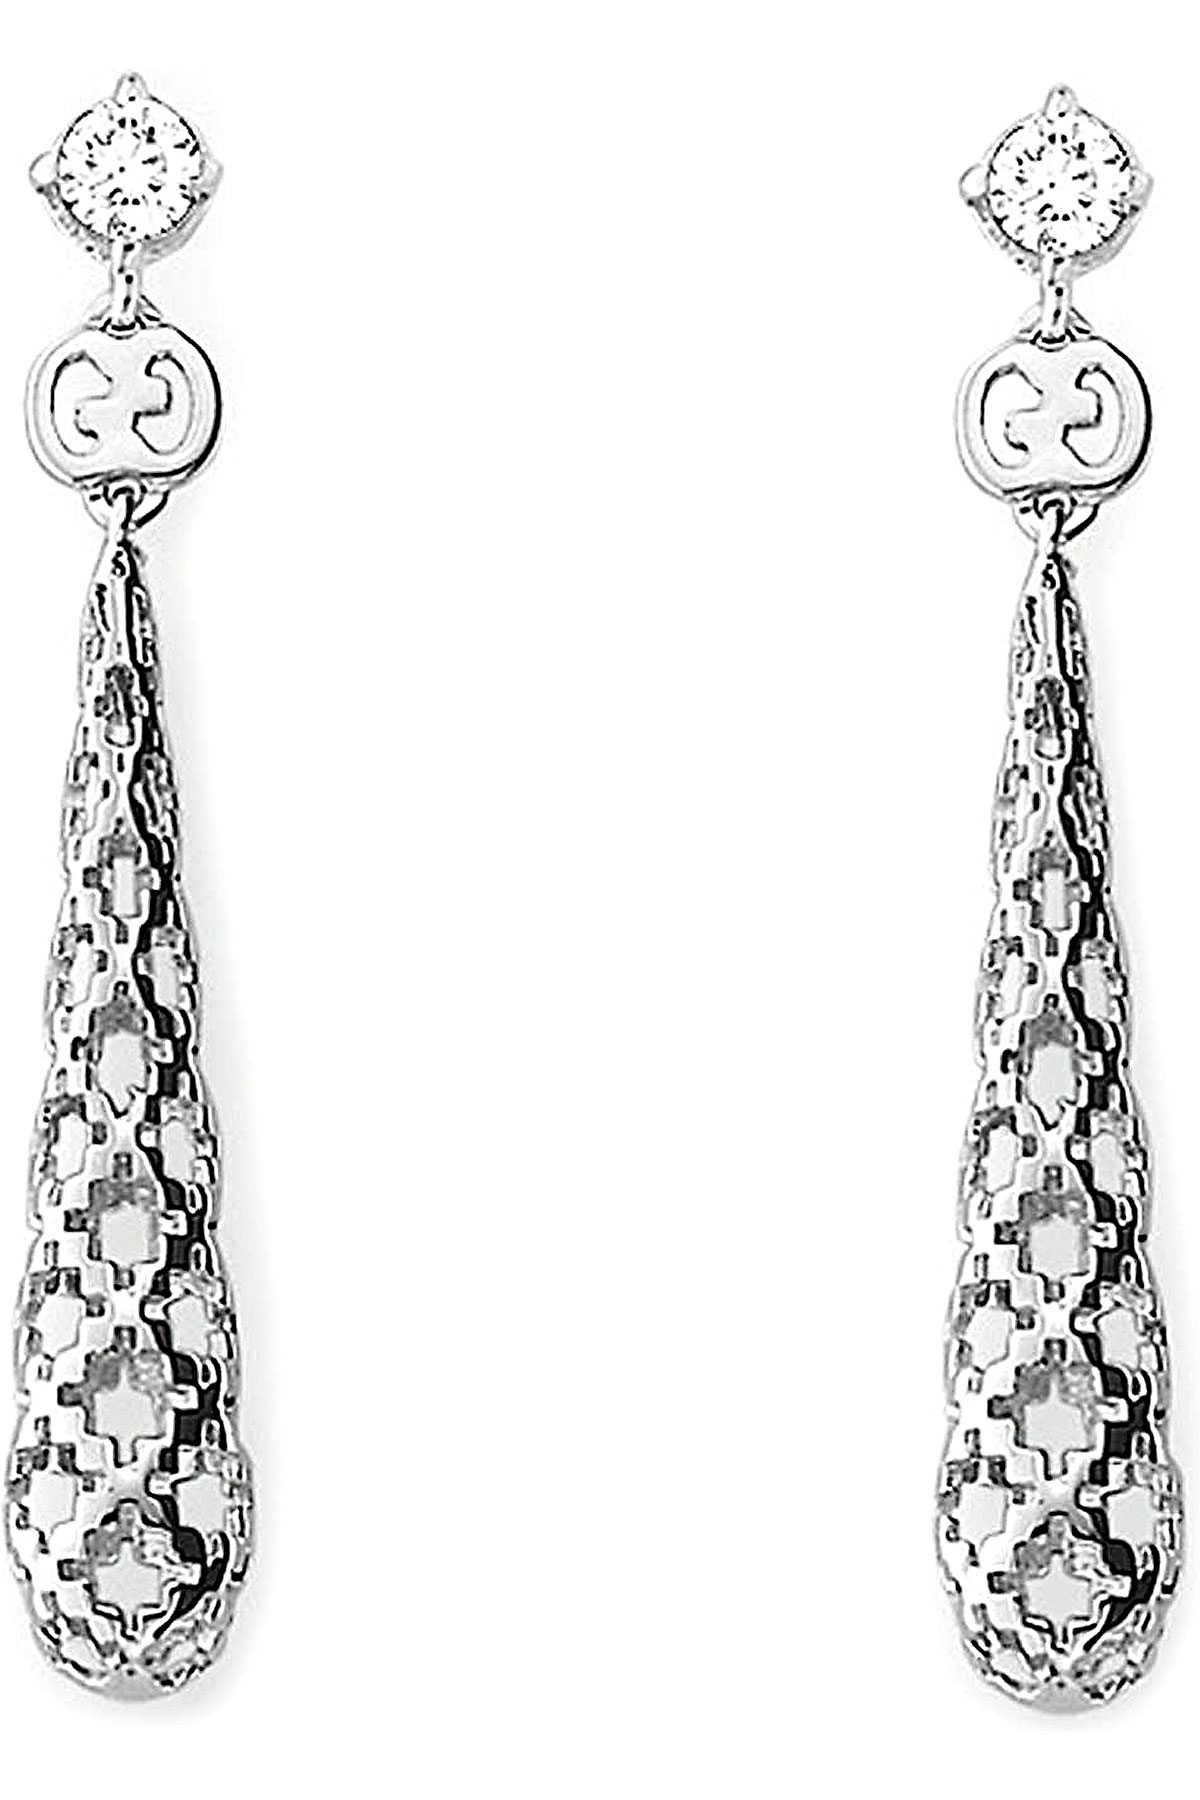 Gucci Boucle d'Oreille Femme, Or blanc, Or Blanc 18 Carats, 2019